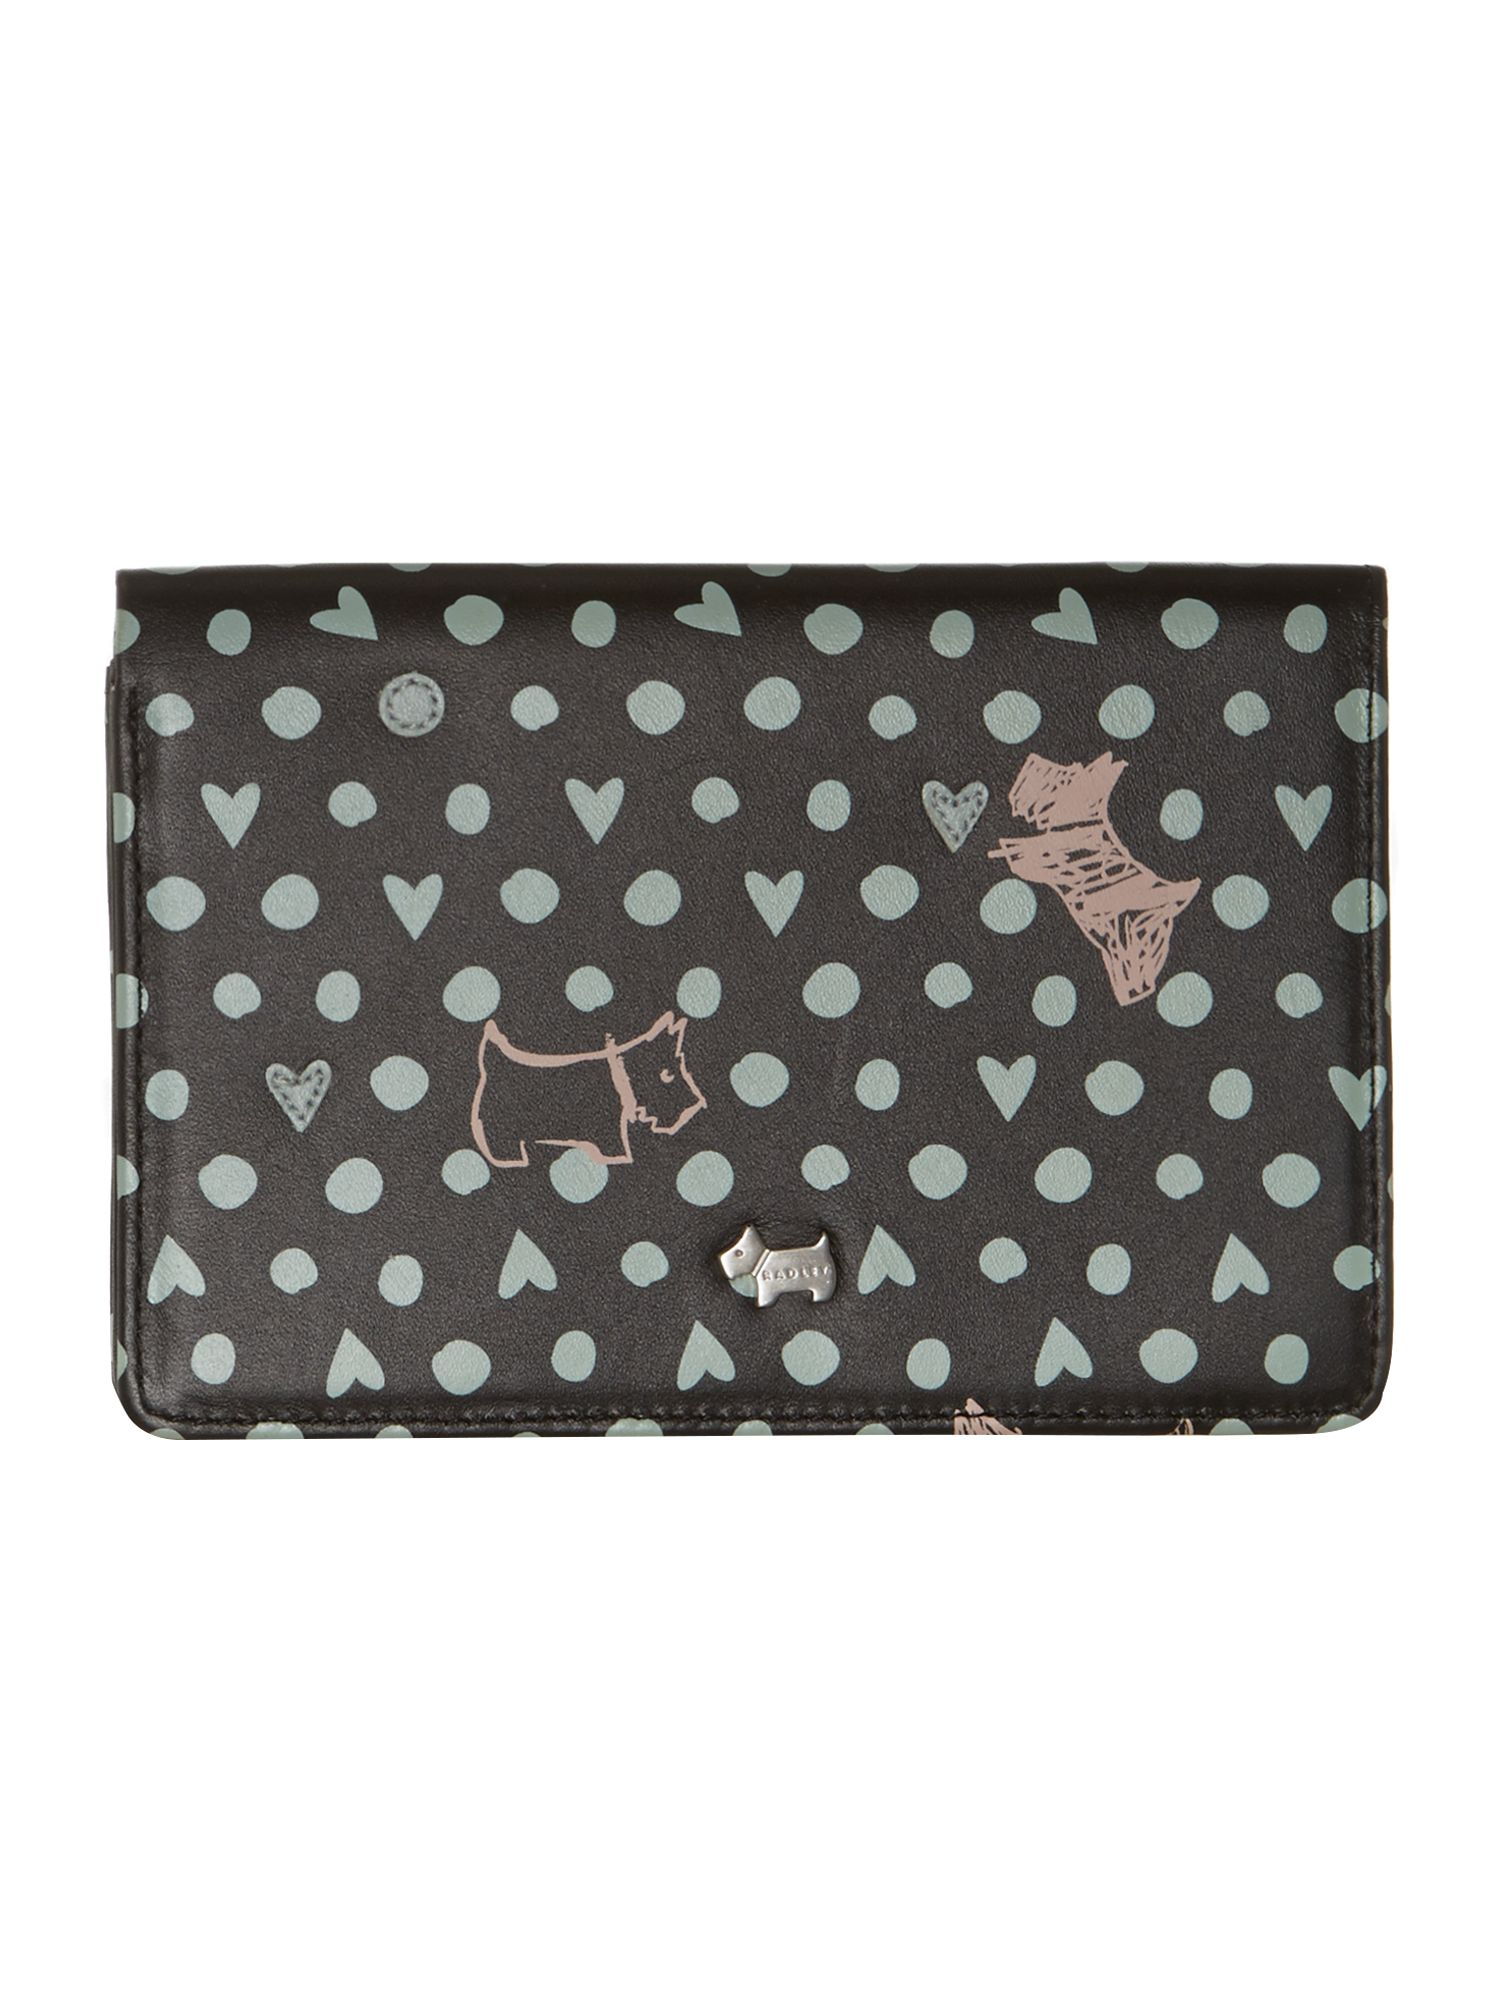 Dog n spot black medium purse